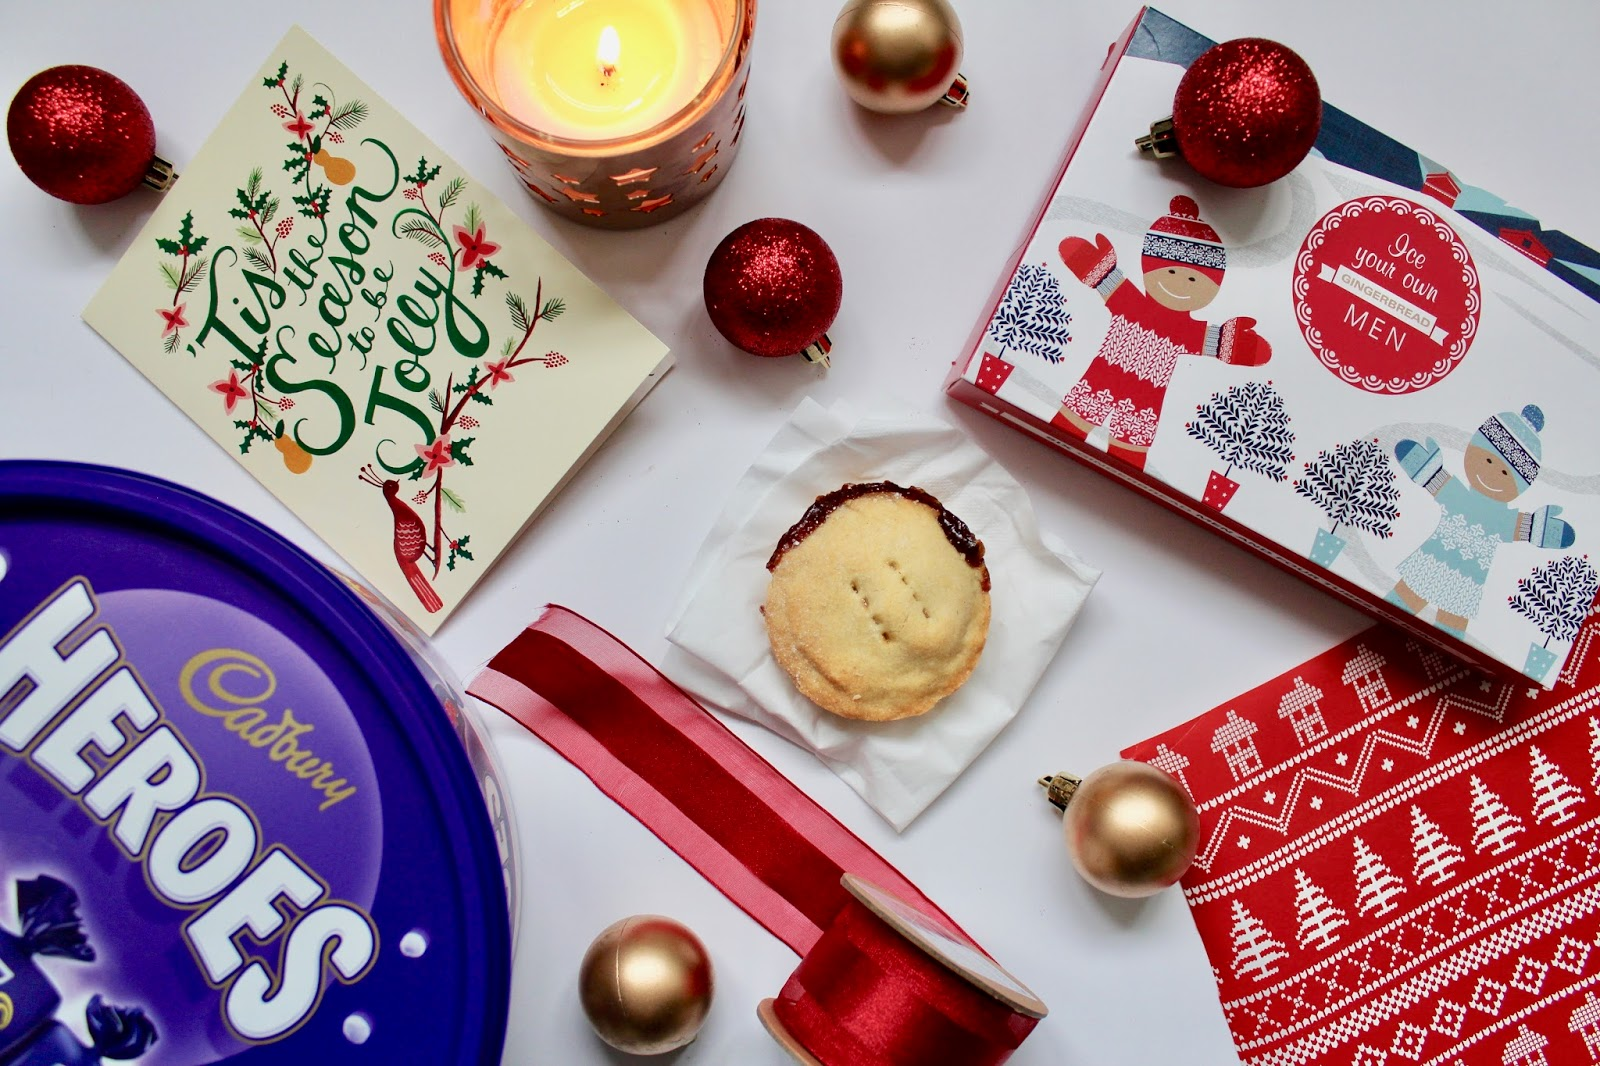 christmas festive spirit cards baubles candles 10 ways wrapping paper chocolate baking mince pies kirstie pickering blogger blog lifestyle life